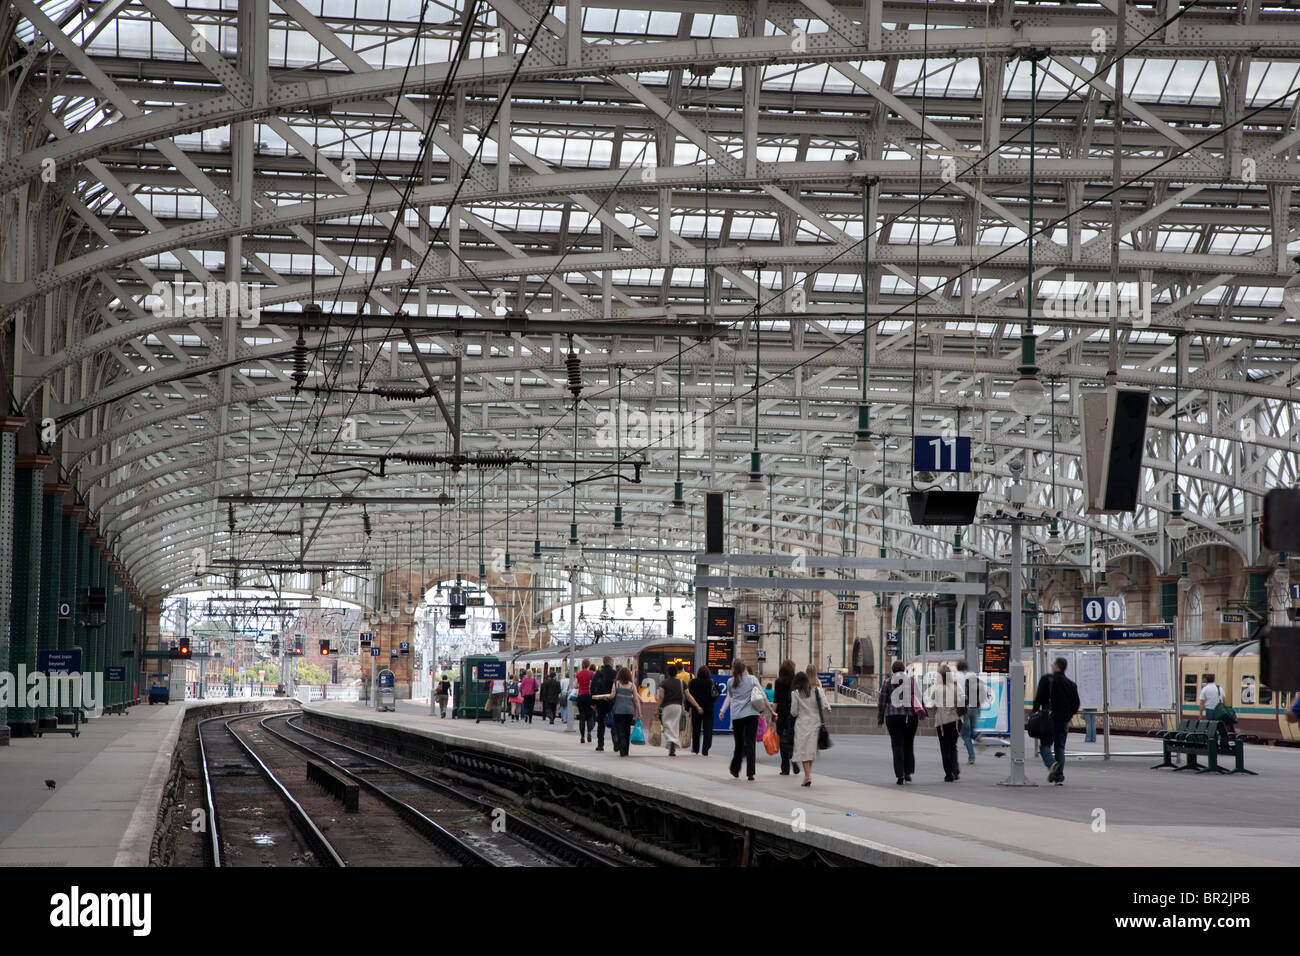 Interior of Glasgow Central Railway Station, Scotland - Stock Image